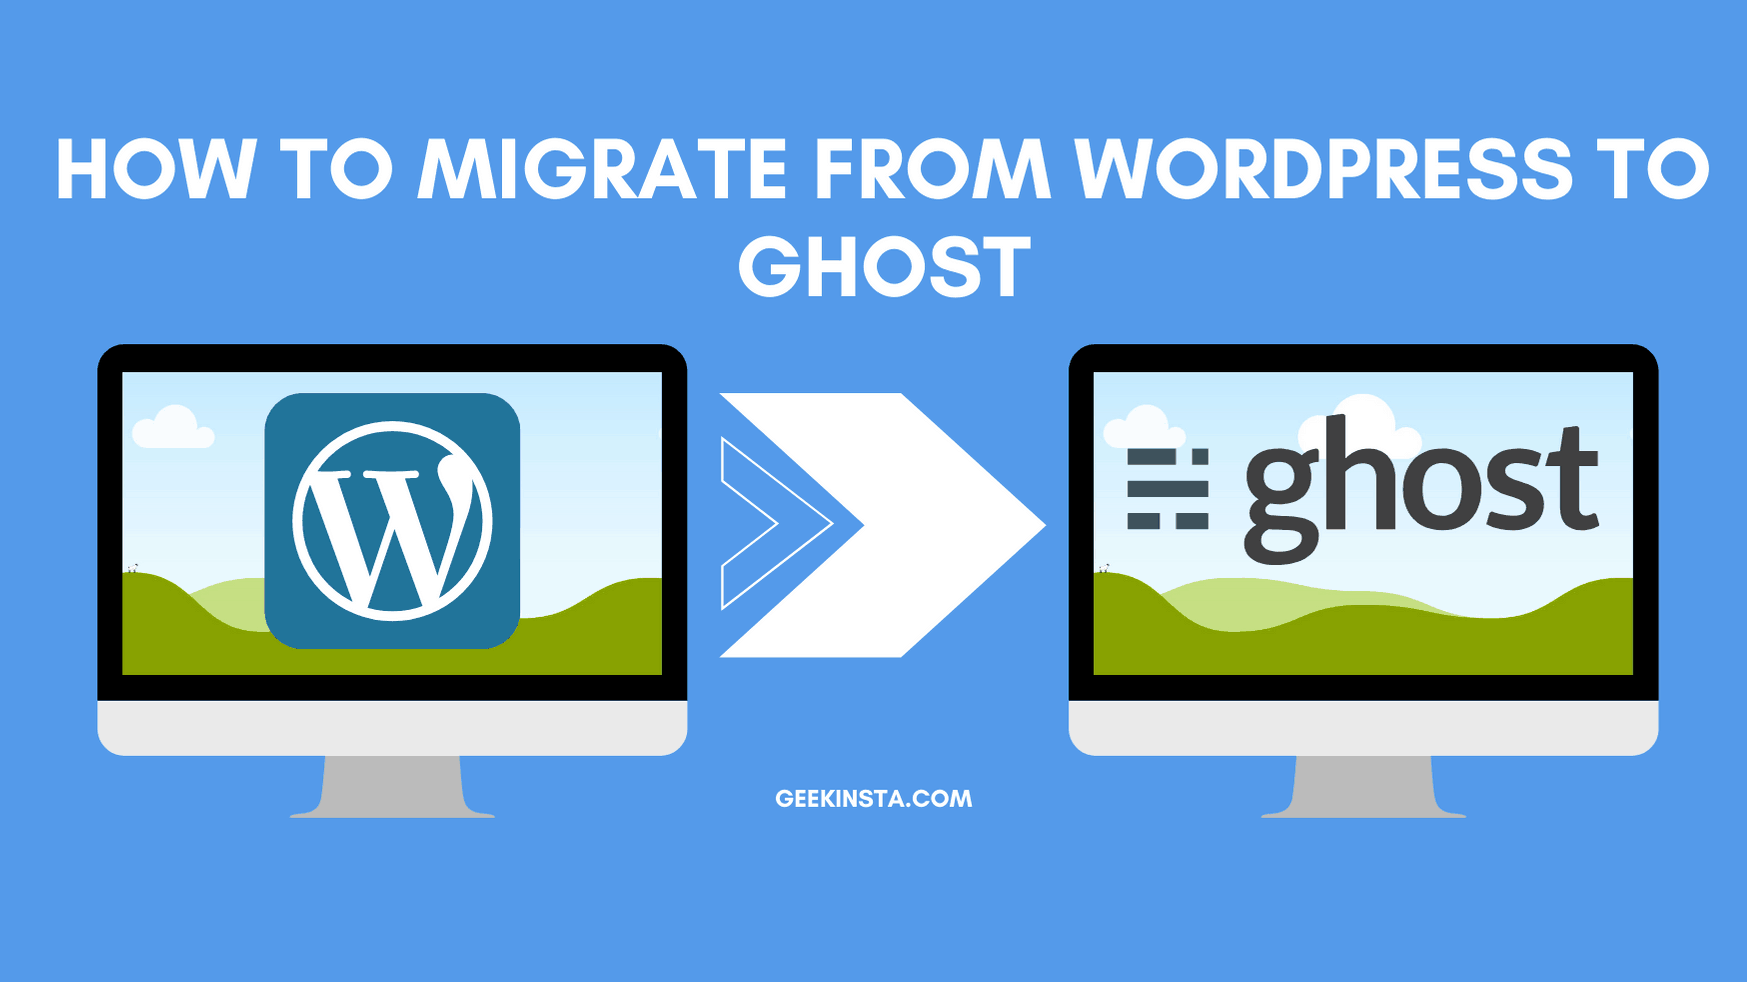 How to migrate from WordPress to Ghost